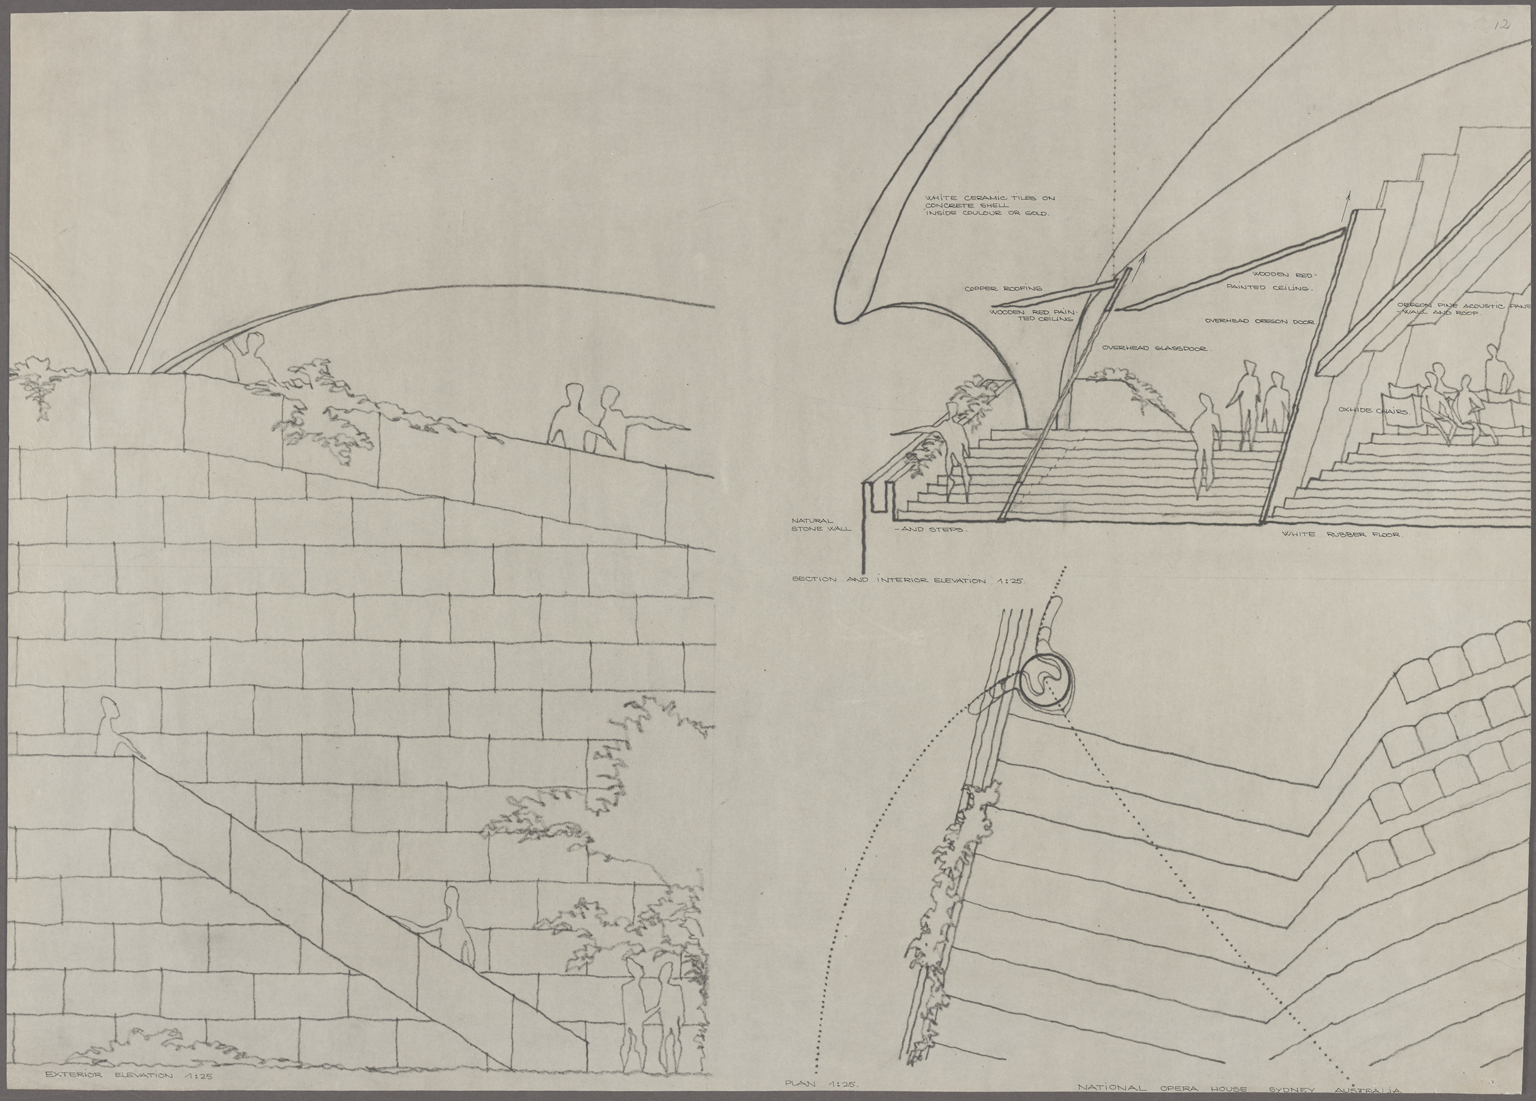 Competition drawings submitted by Jørn Utzon to the Opera